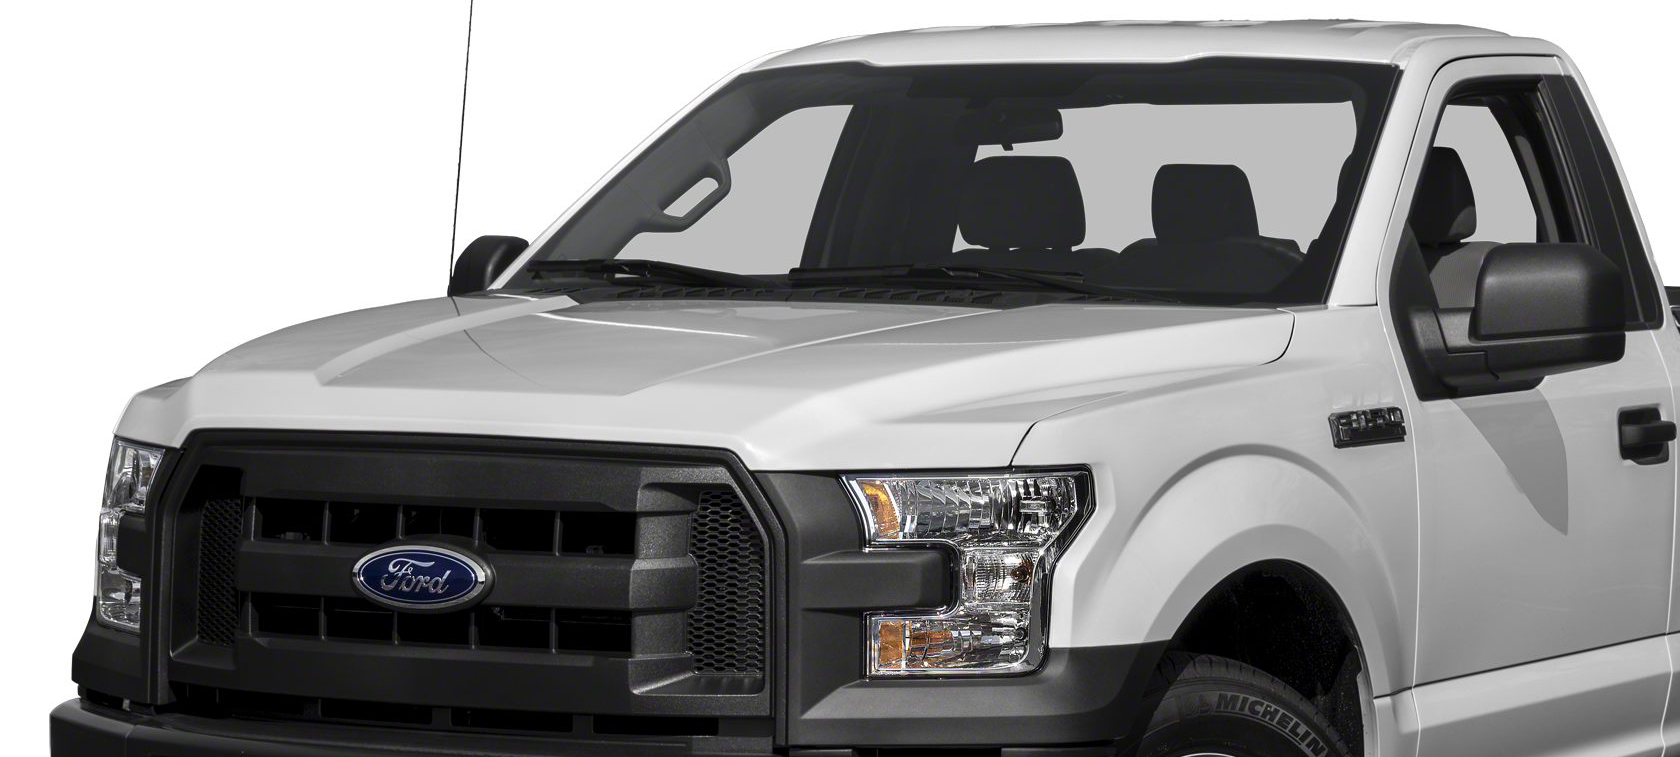 2016 Ford F-150 LPG/CNG ready to roll